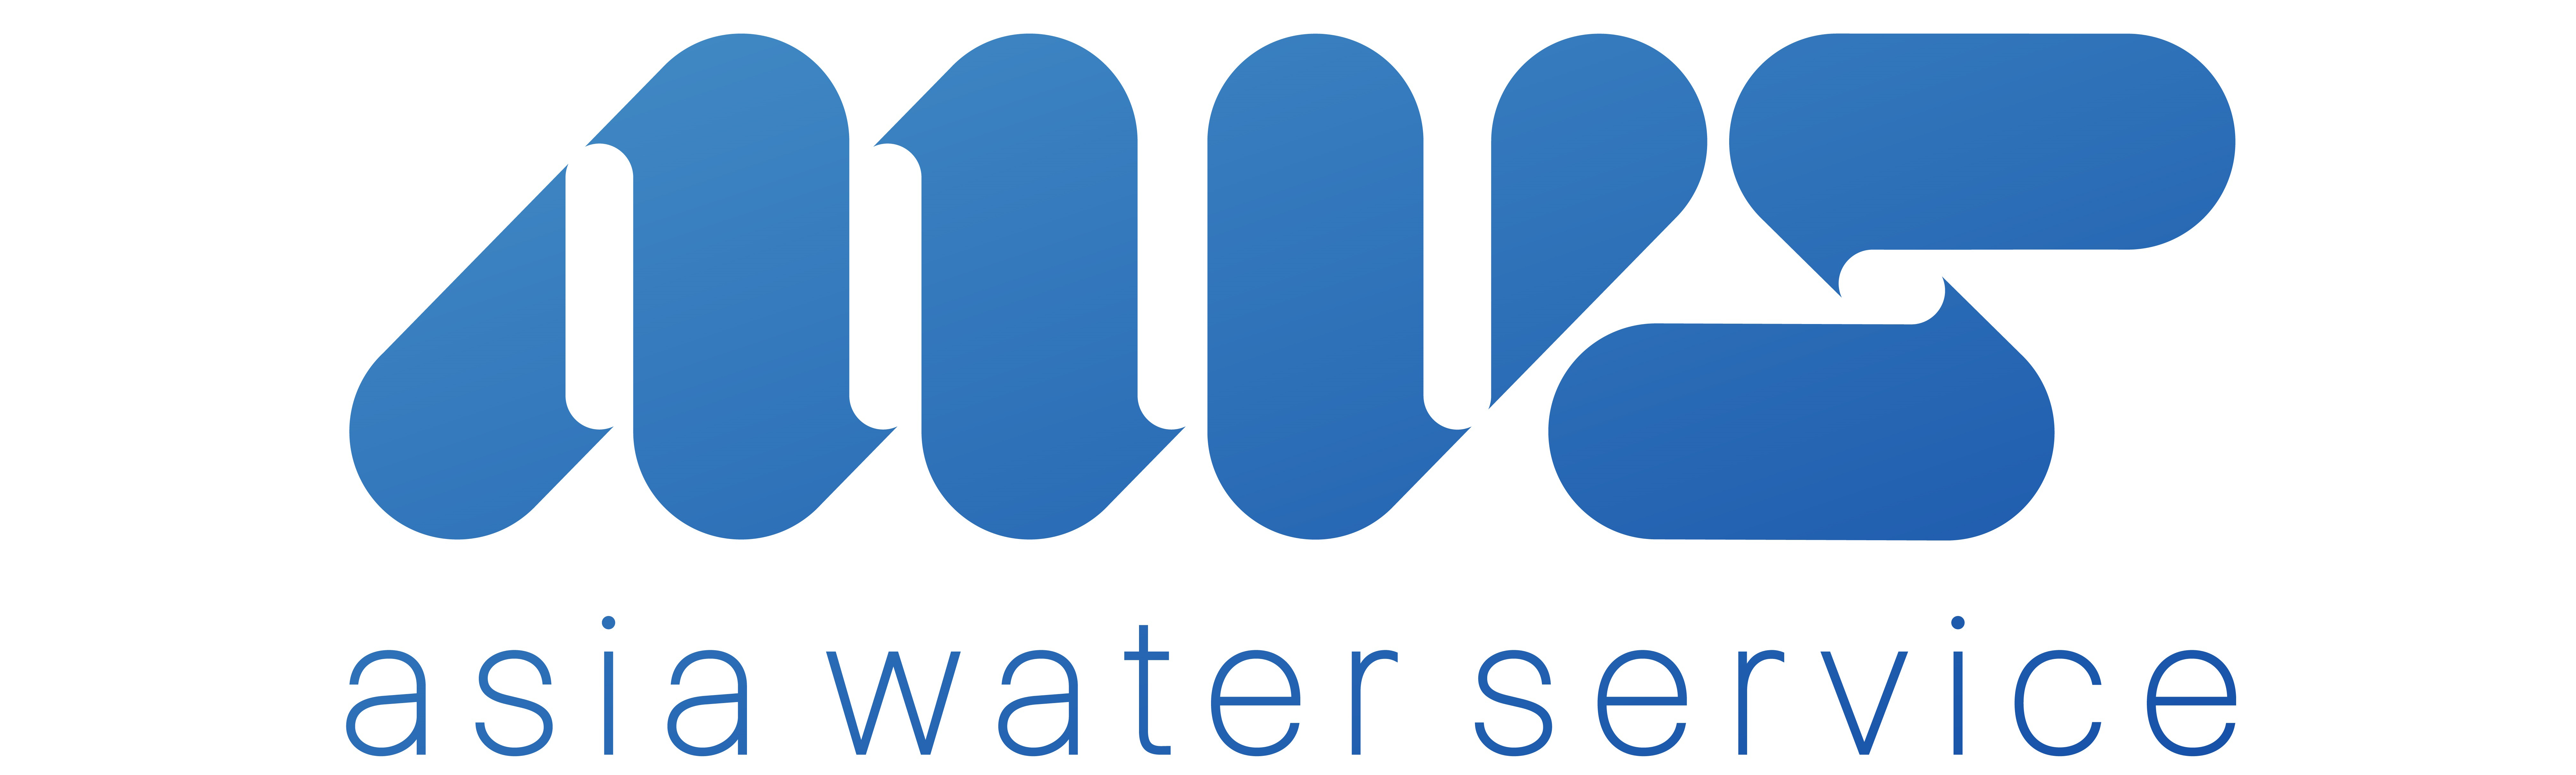 Asia Water Service